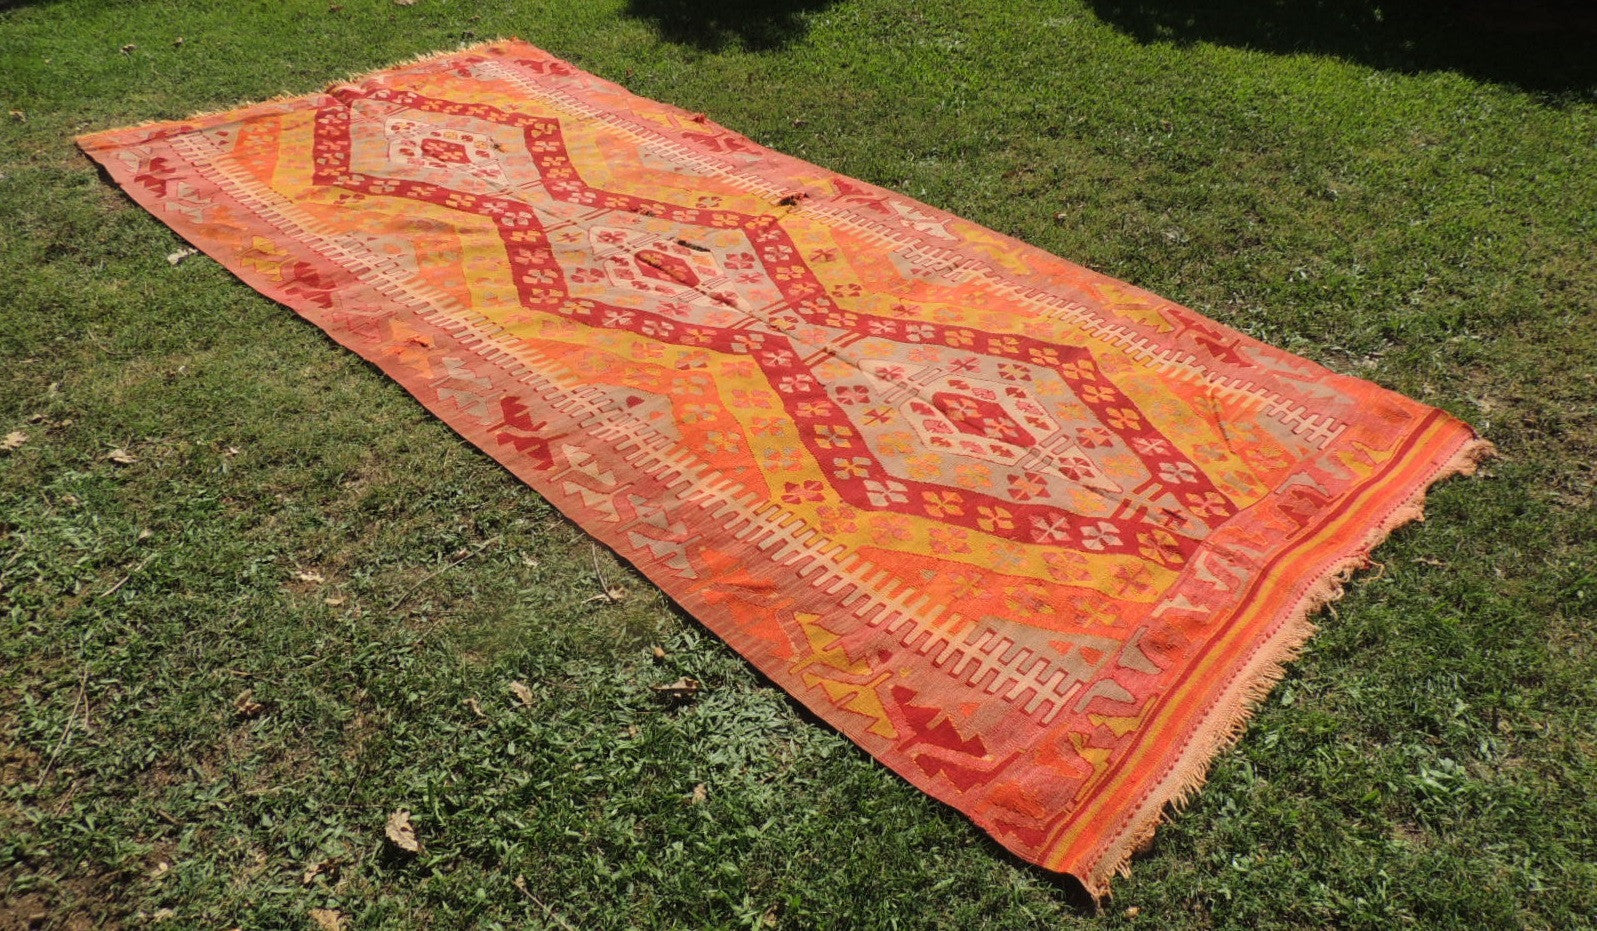 6x13 feet Turkish Sivas Kilim Rug with Red and Orange Color Tones